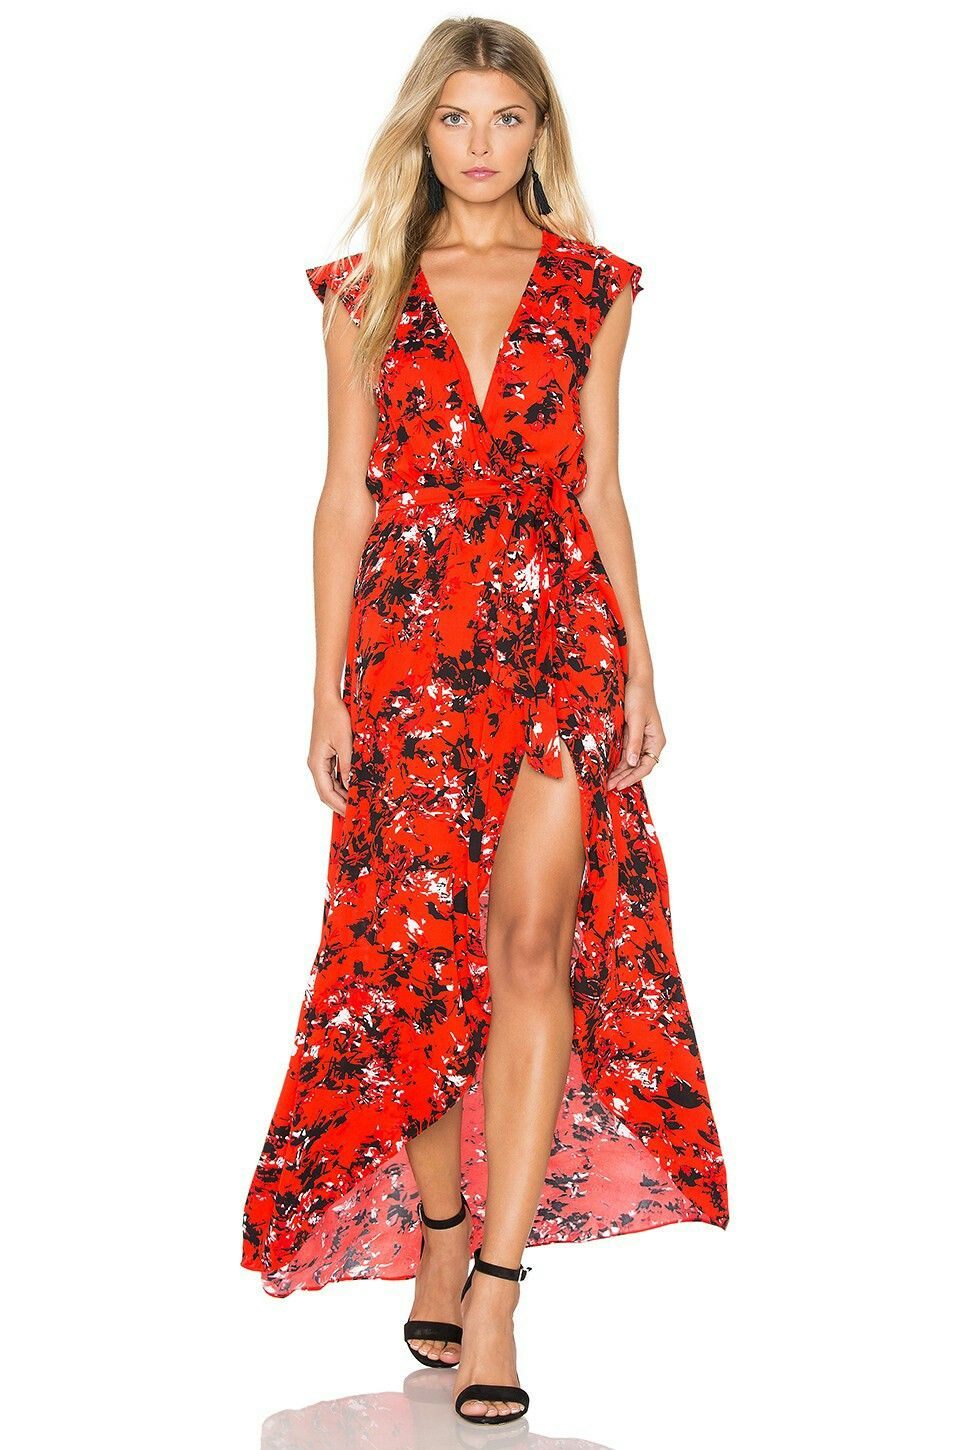 K G Maxi Dresses Lulu Fashion Trends Dress